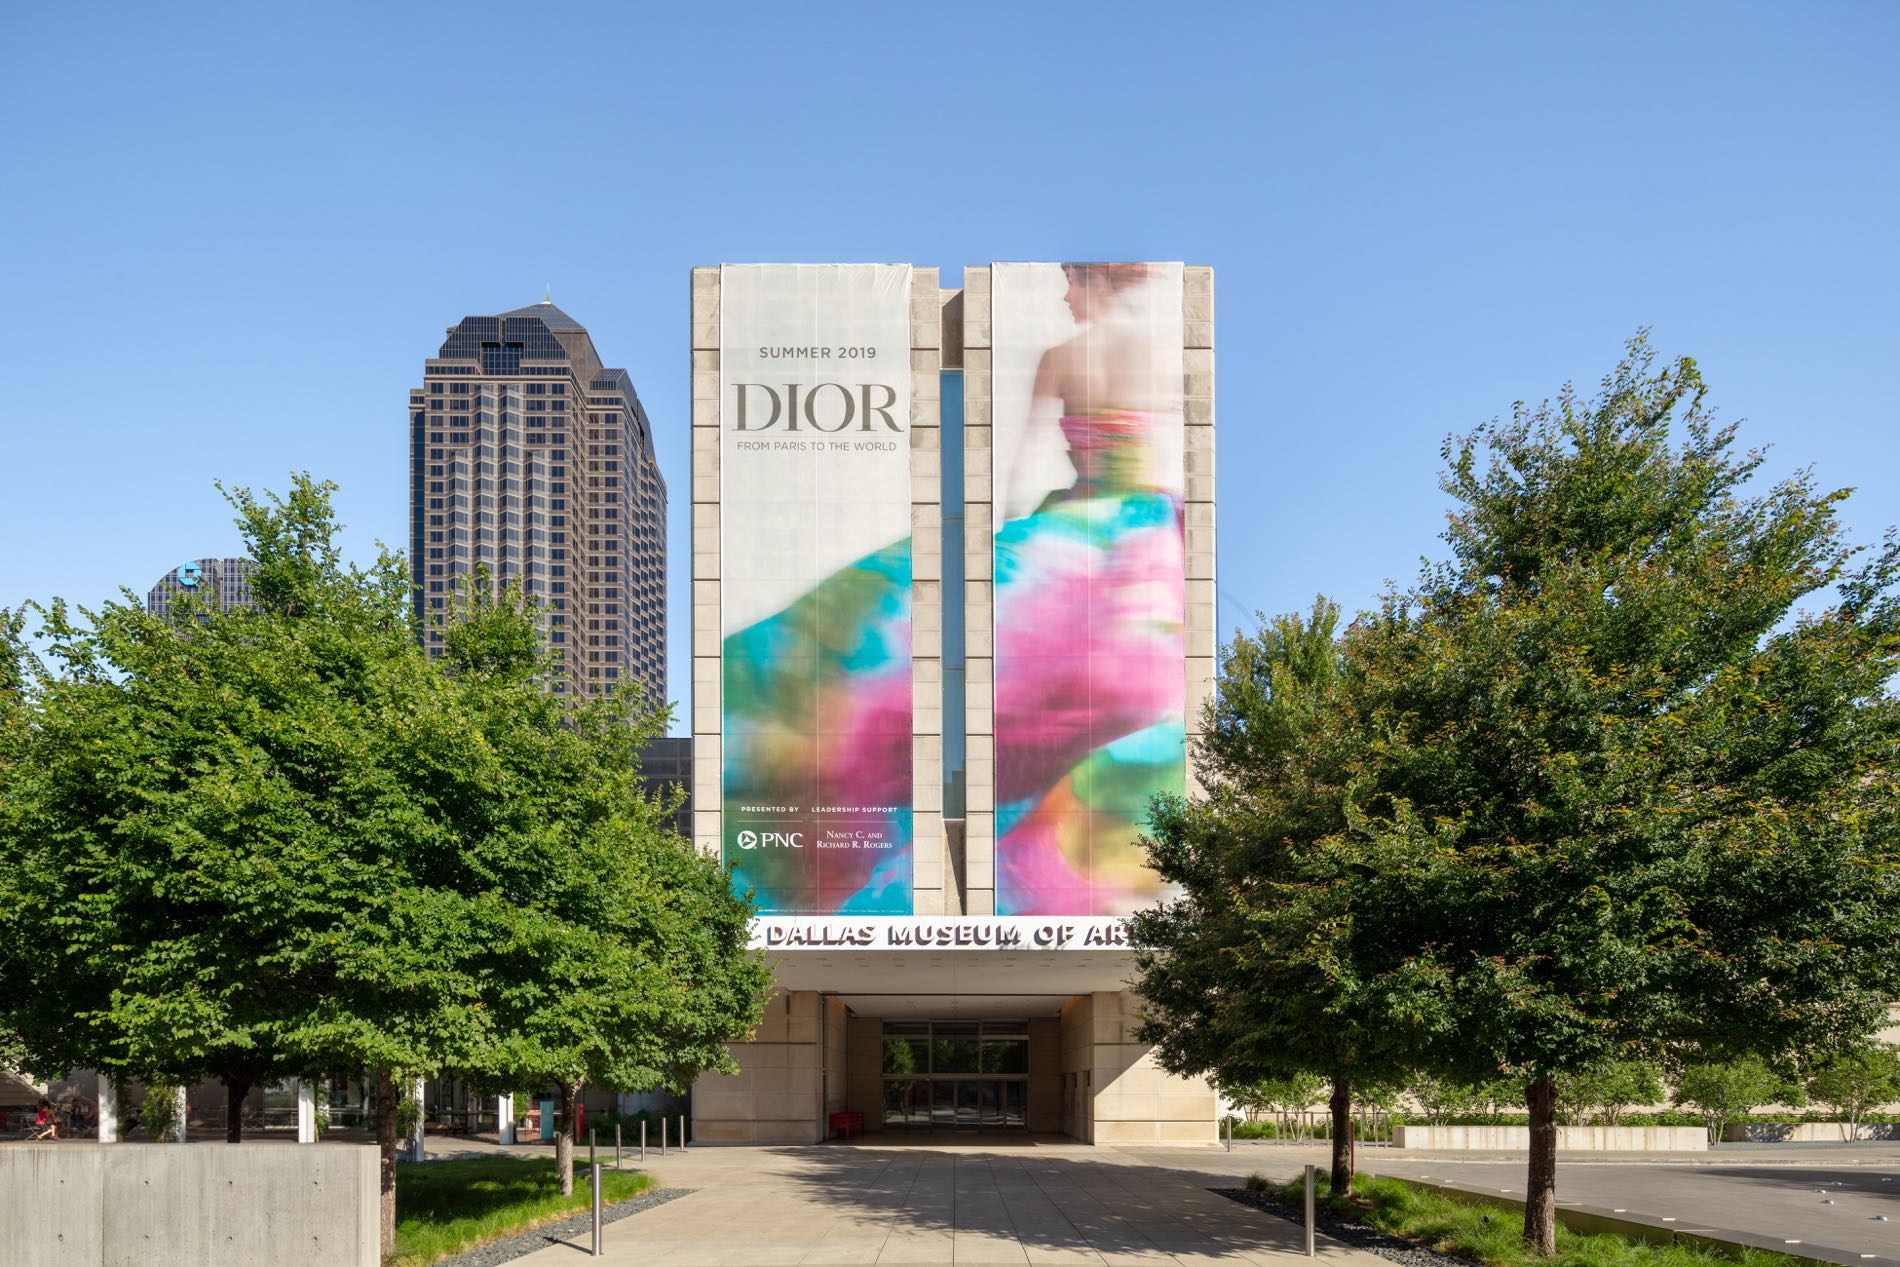 Dior: from Paris to the World, At the Dallas Museum of Art